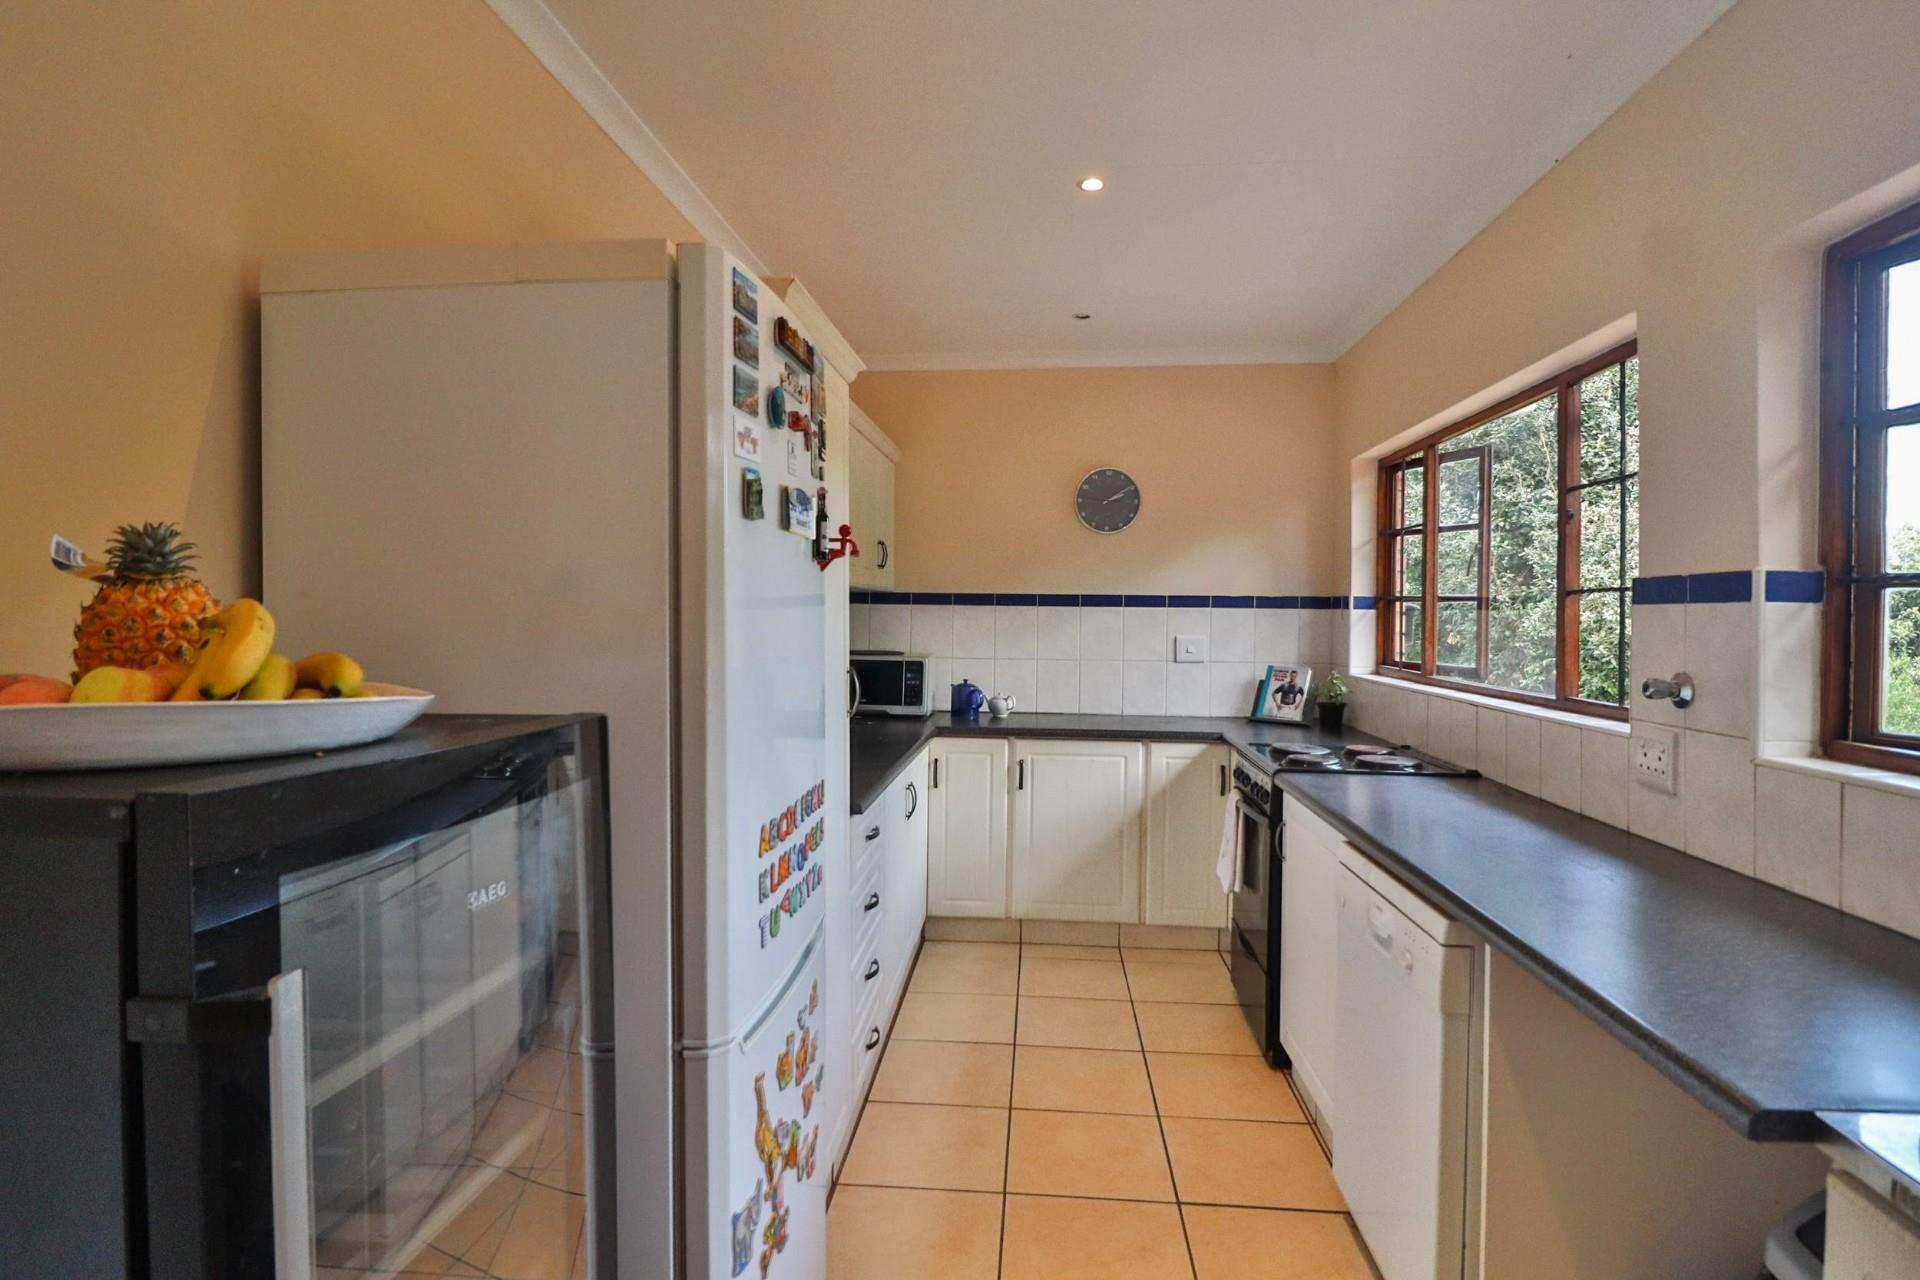 3 Bedroom House For Sale in Montrose